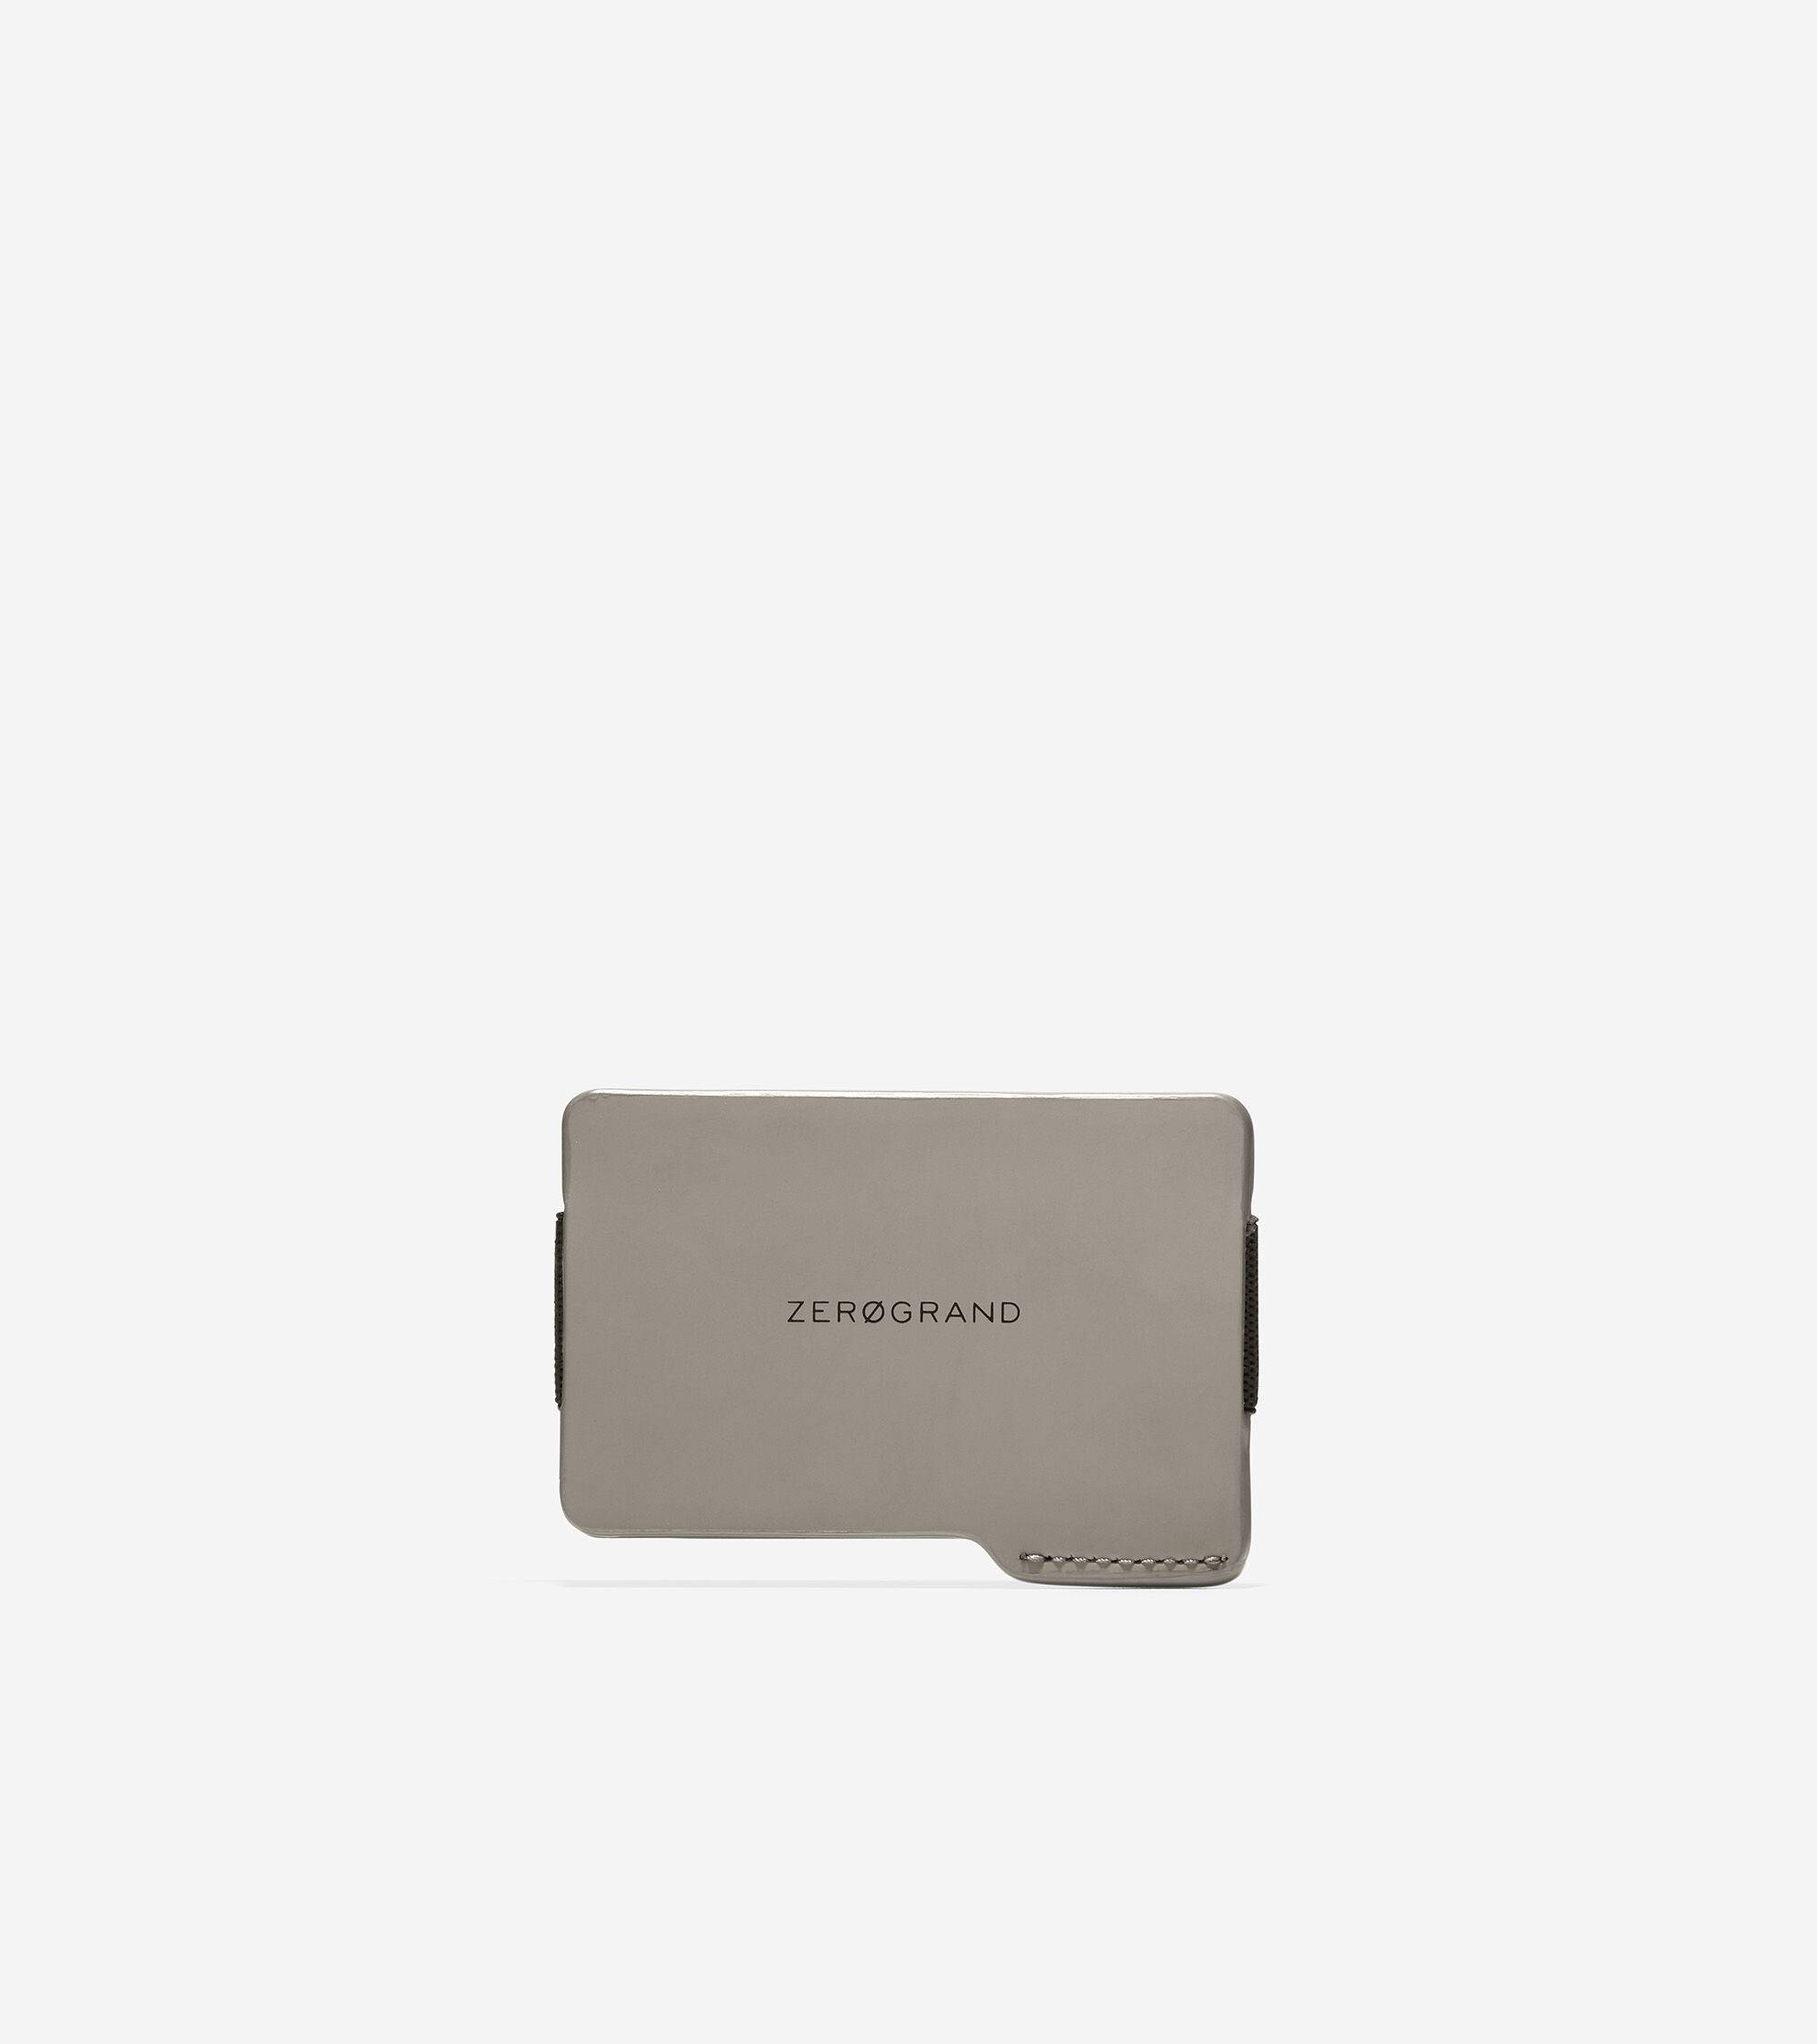 Cole Haan ZERØGRAND Rubberized Leather Card Case - GRAY - Size: OSFA